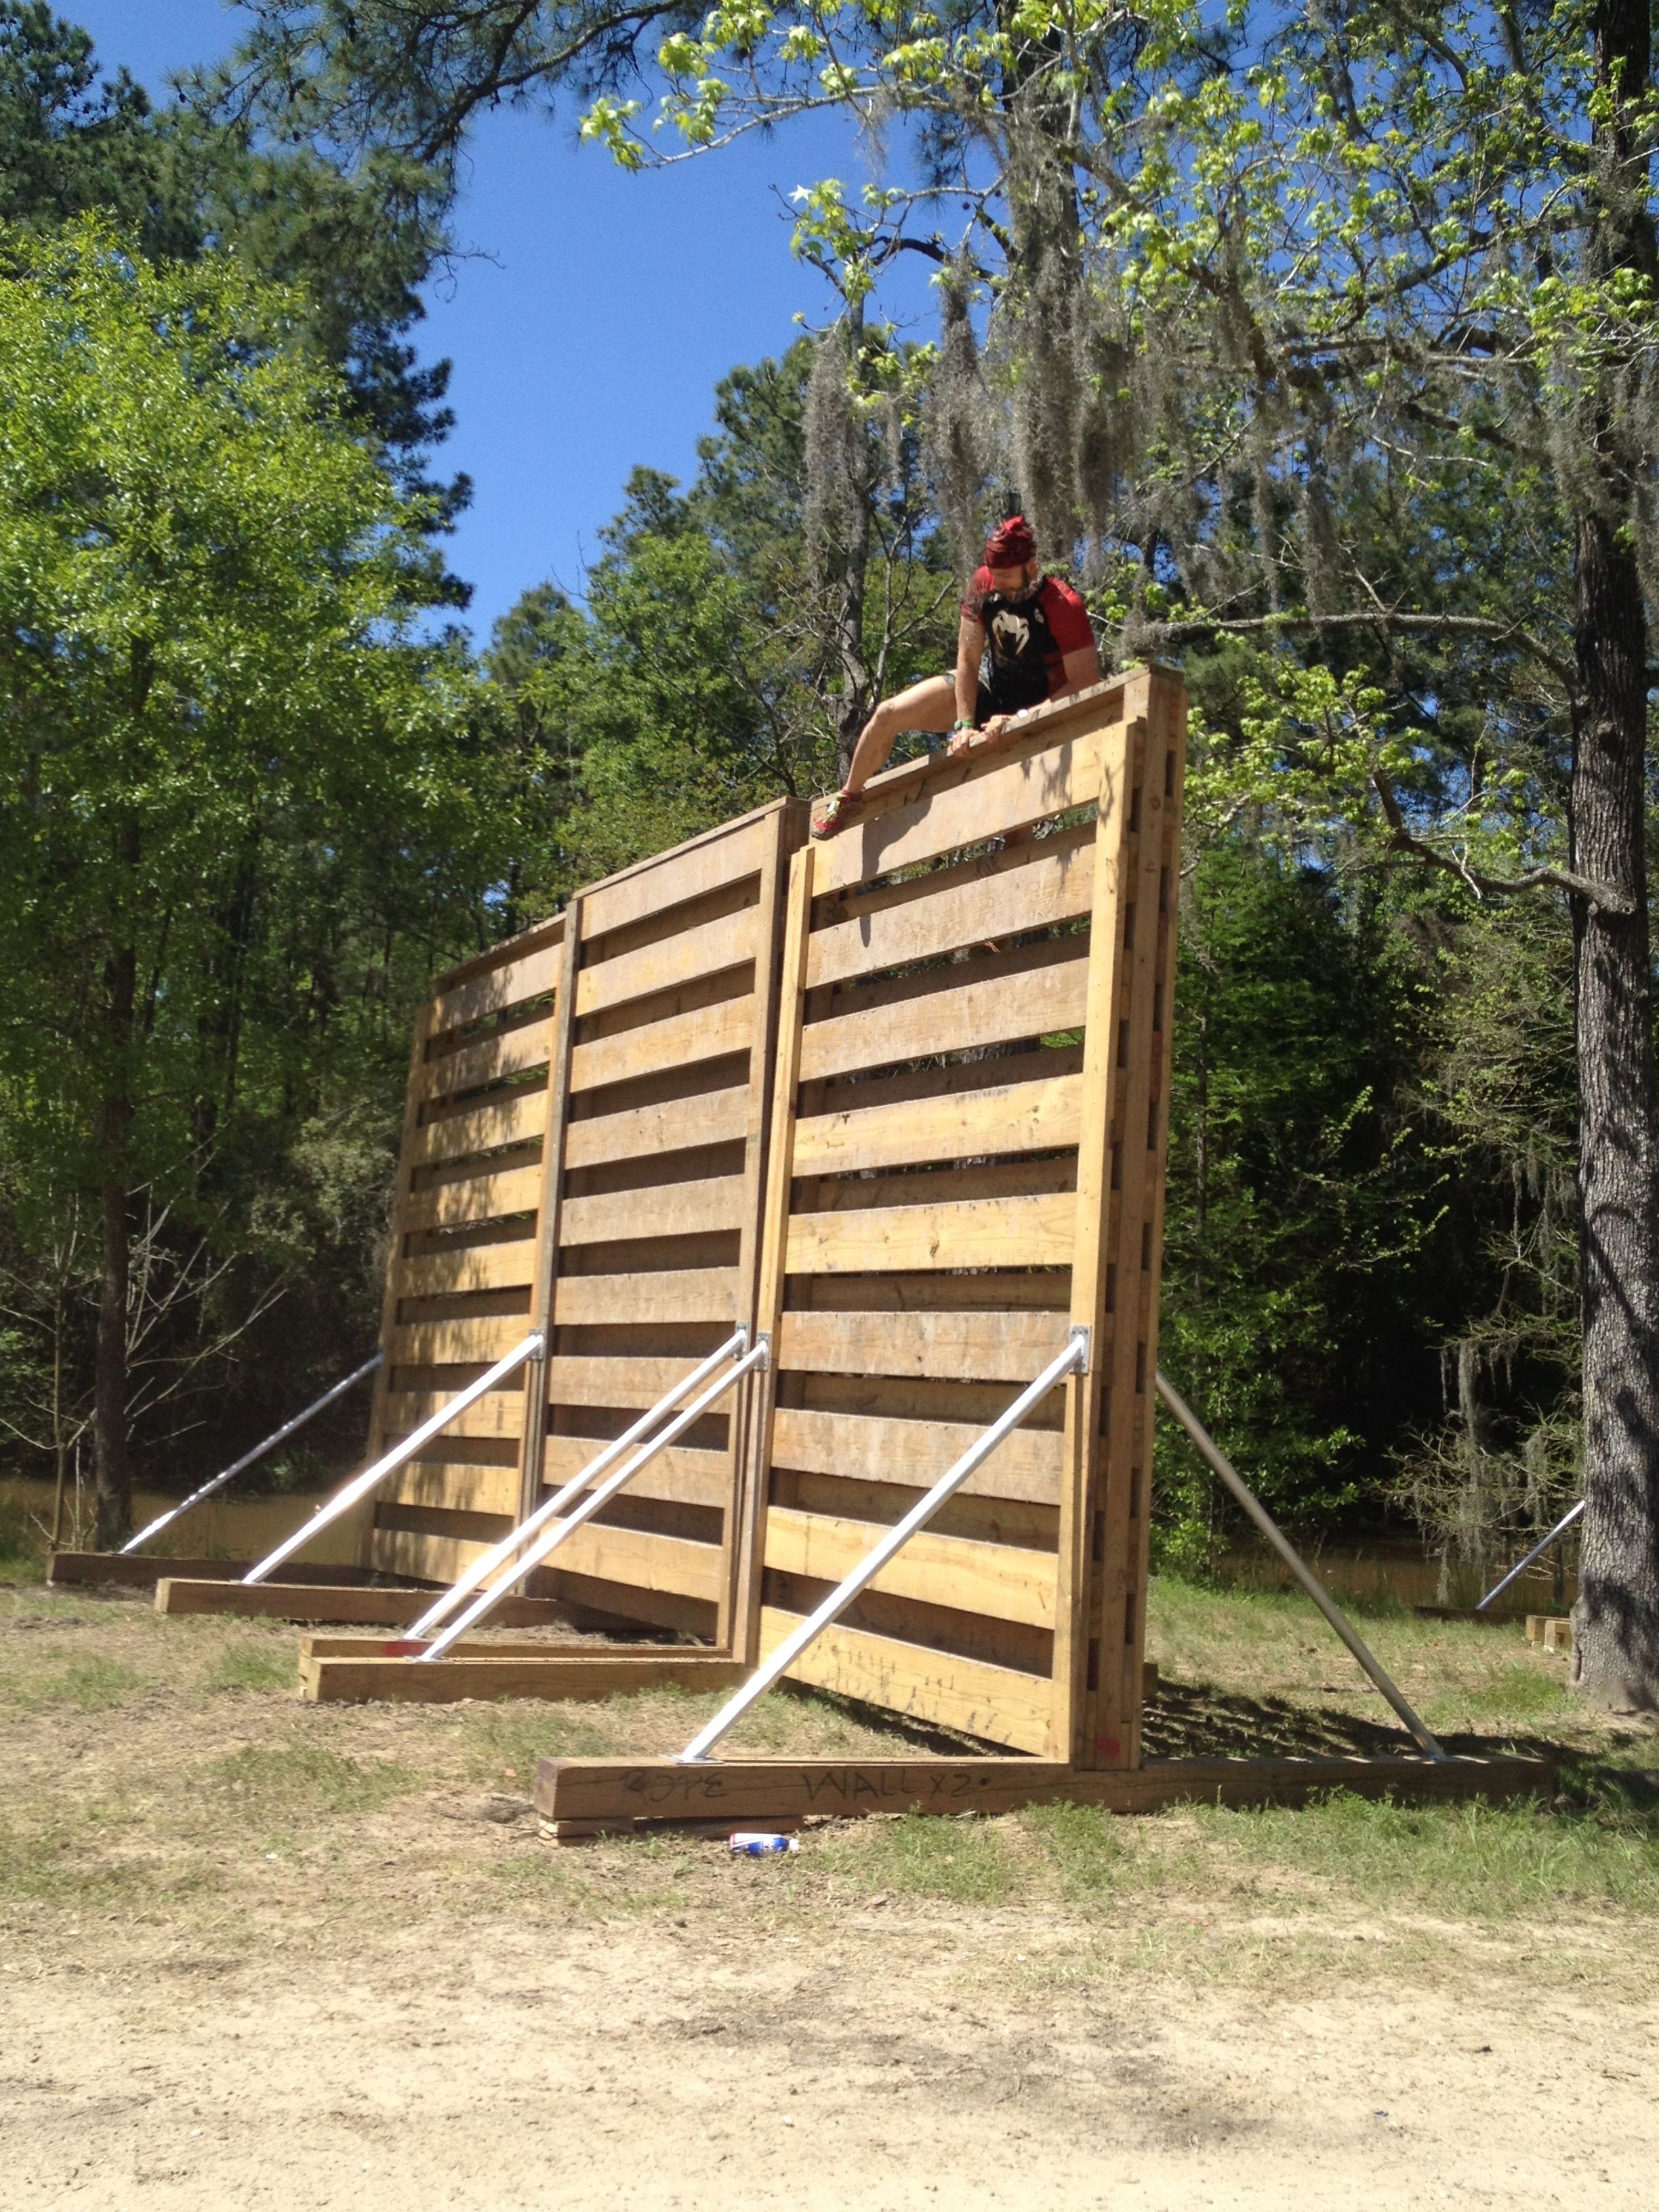 Battlefrog houston 2015 review backyard obstacle course